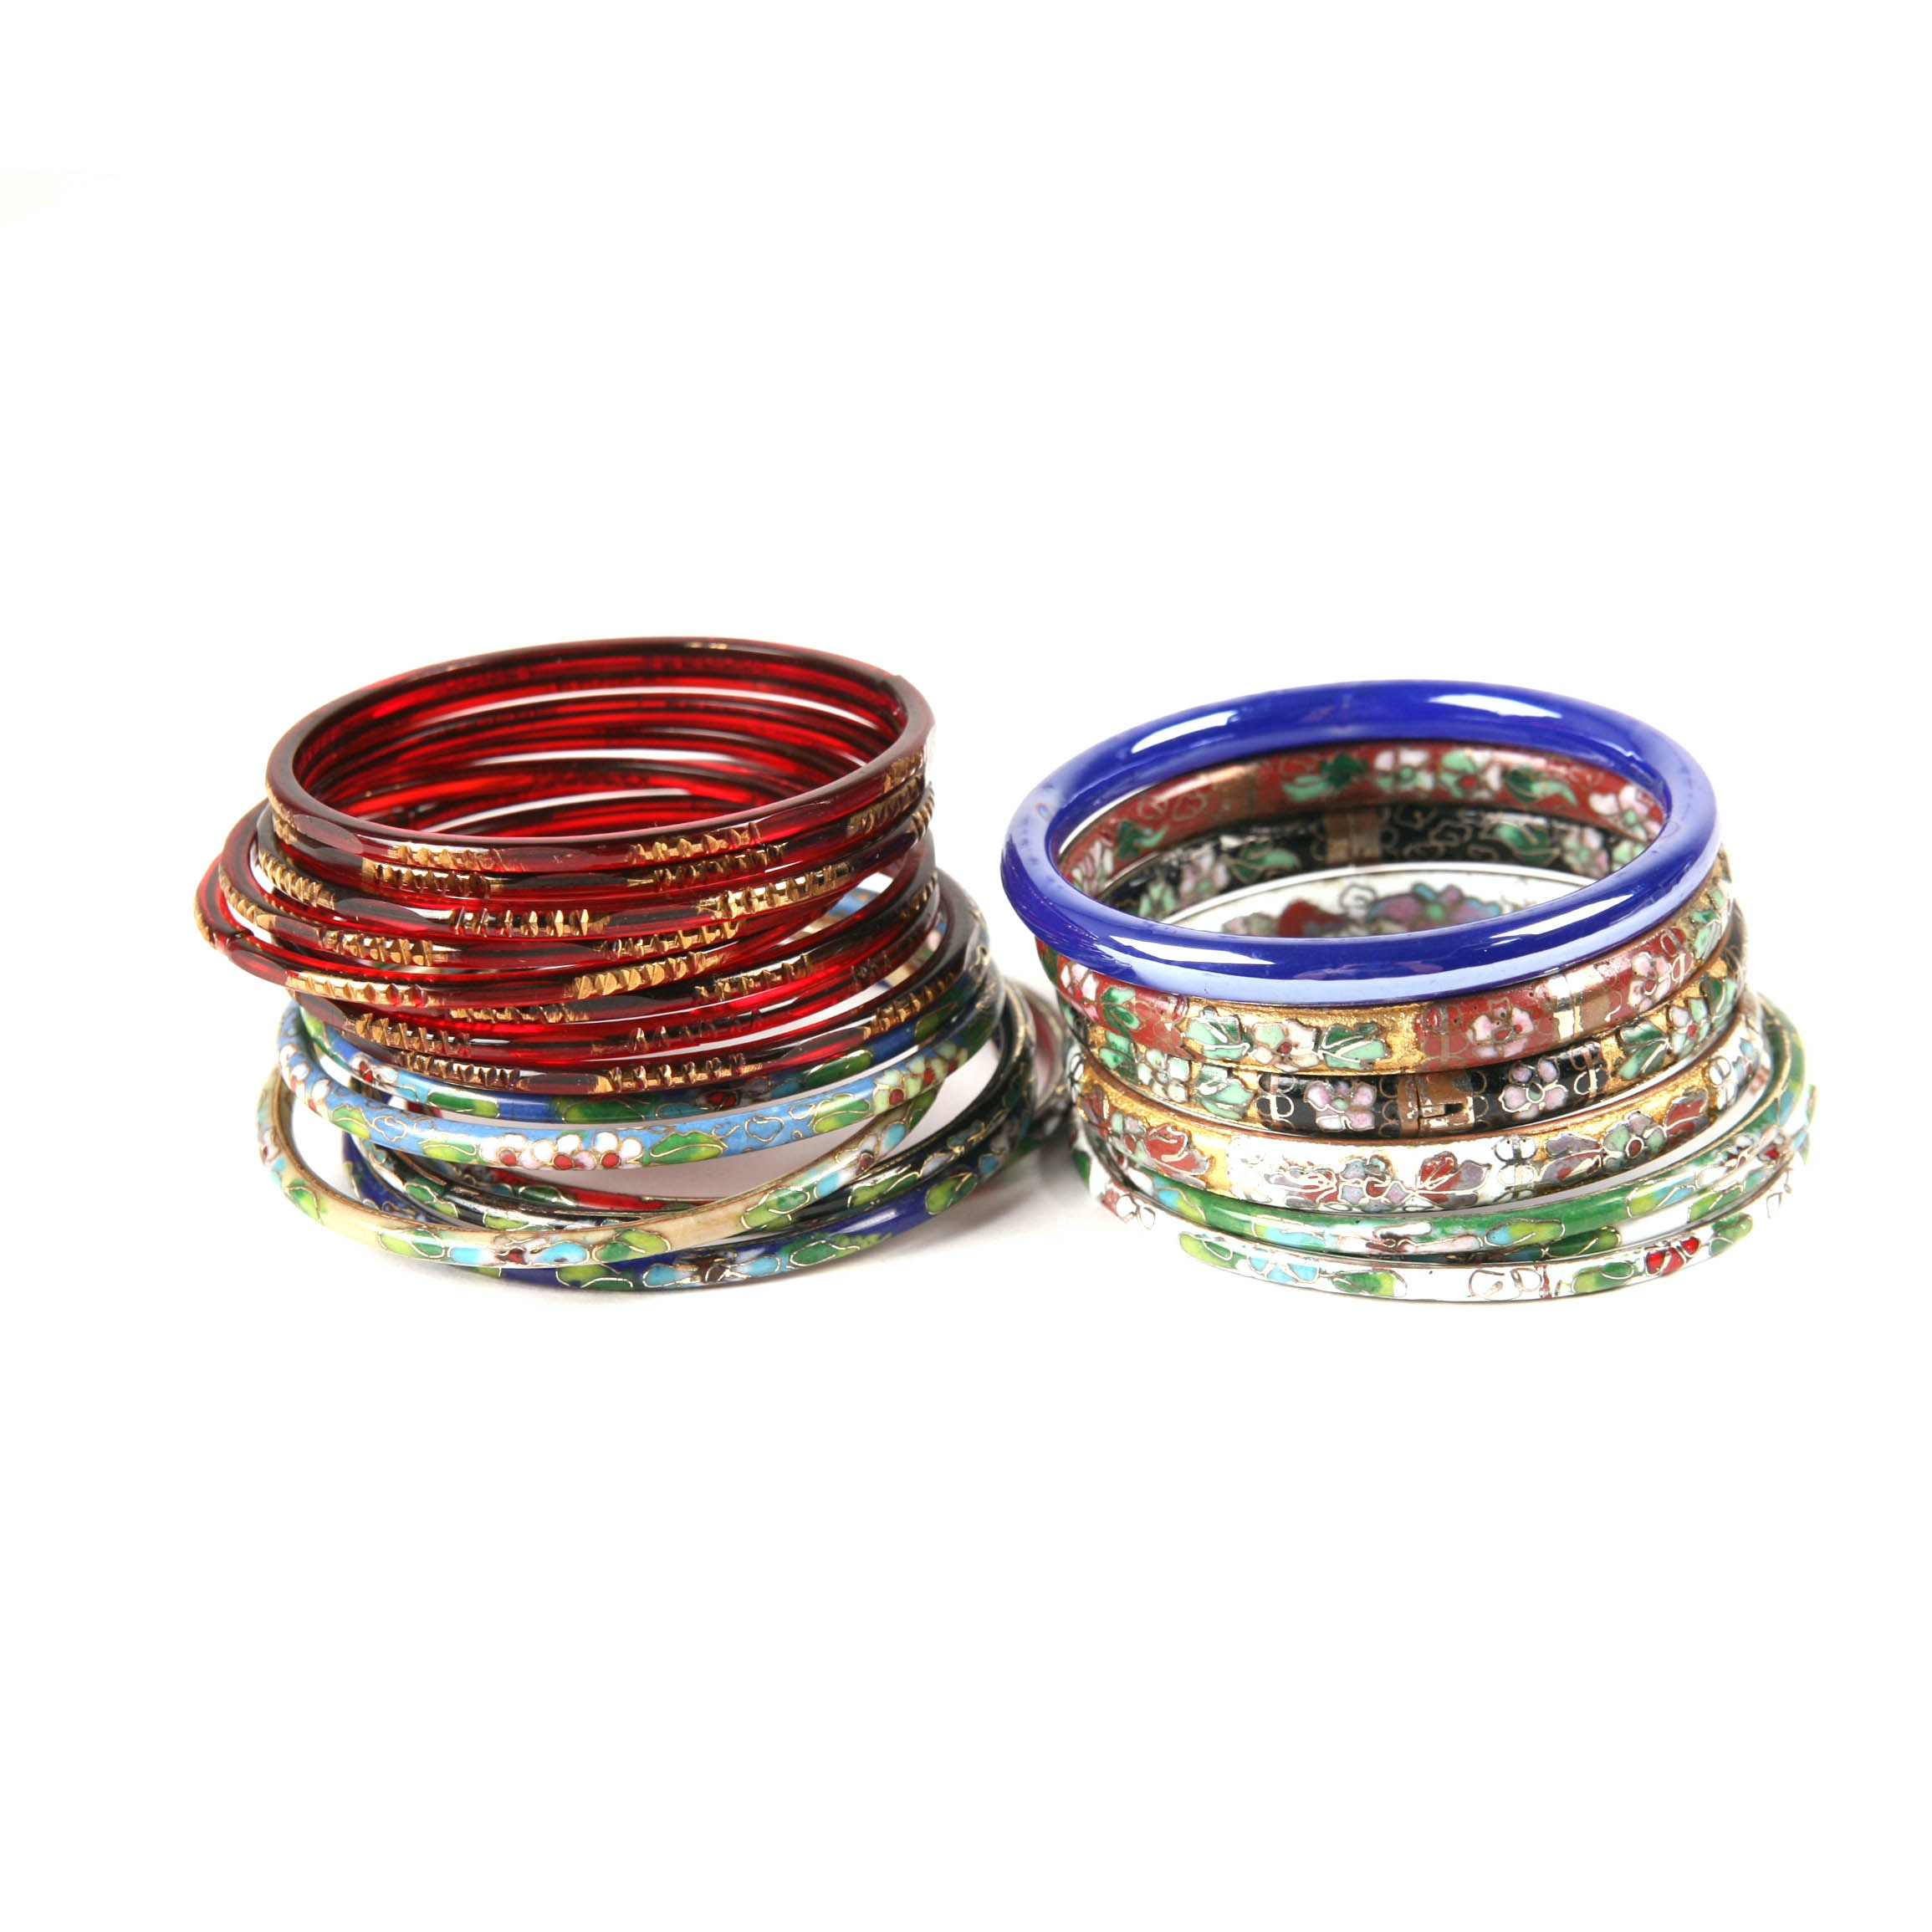 Vintage Chinese Cloisonne Bangles and Czech Pressed Glass Bangles